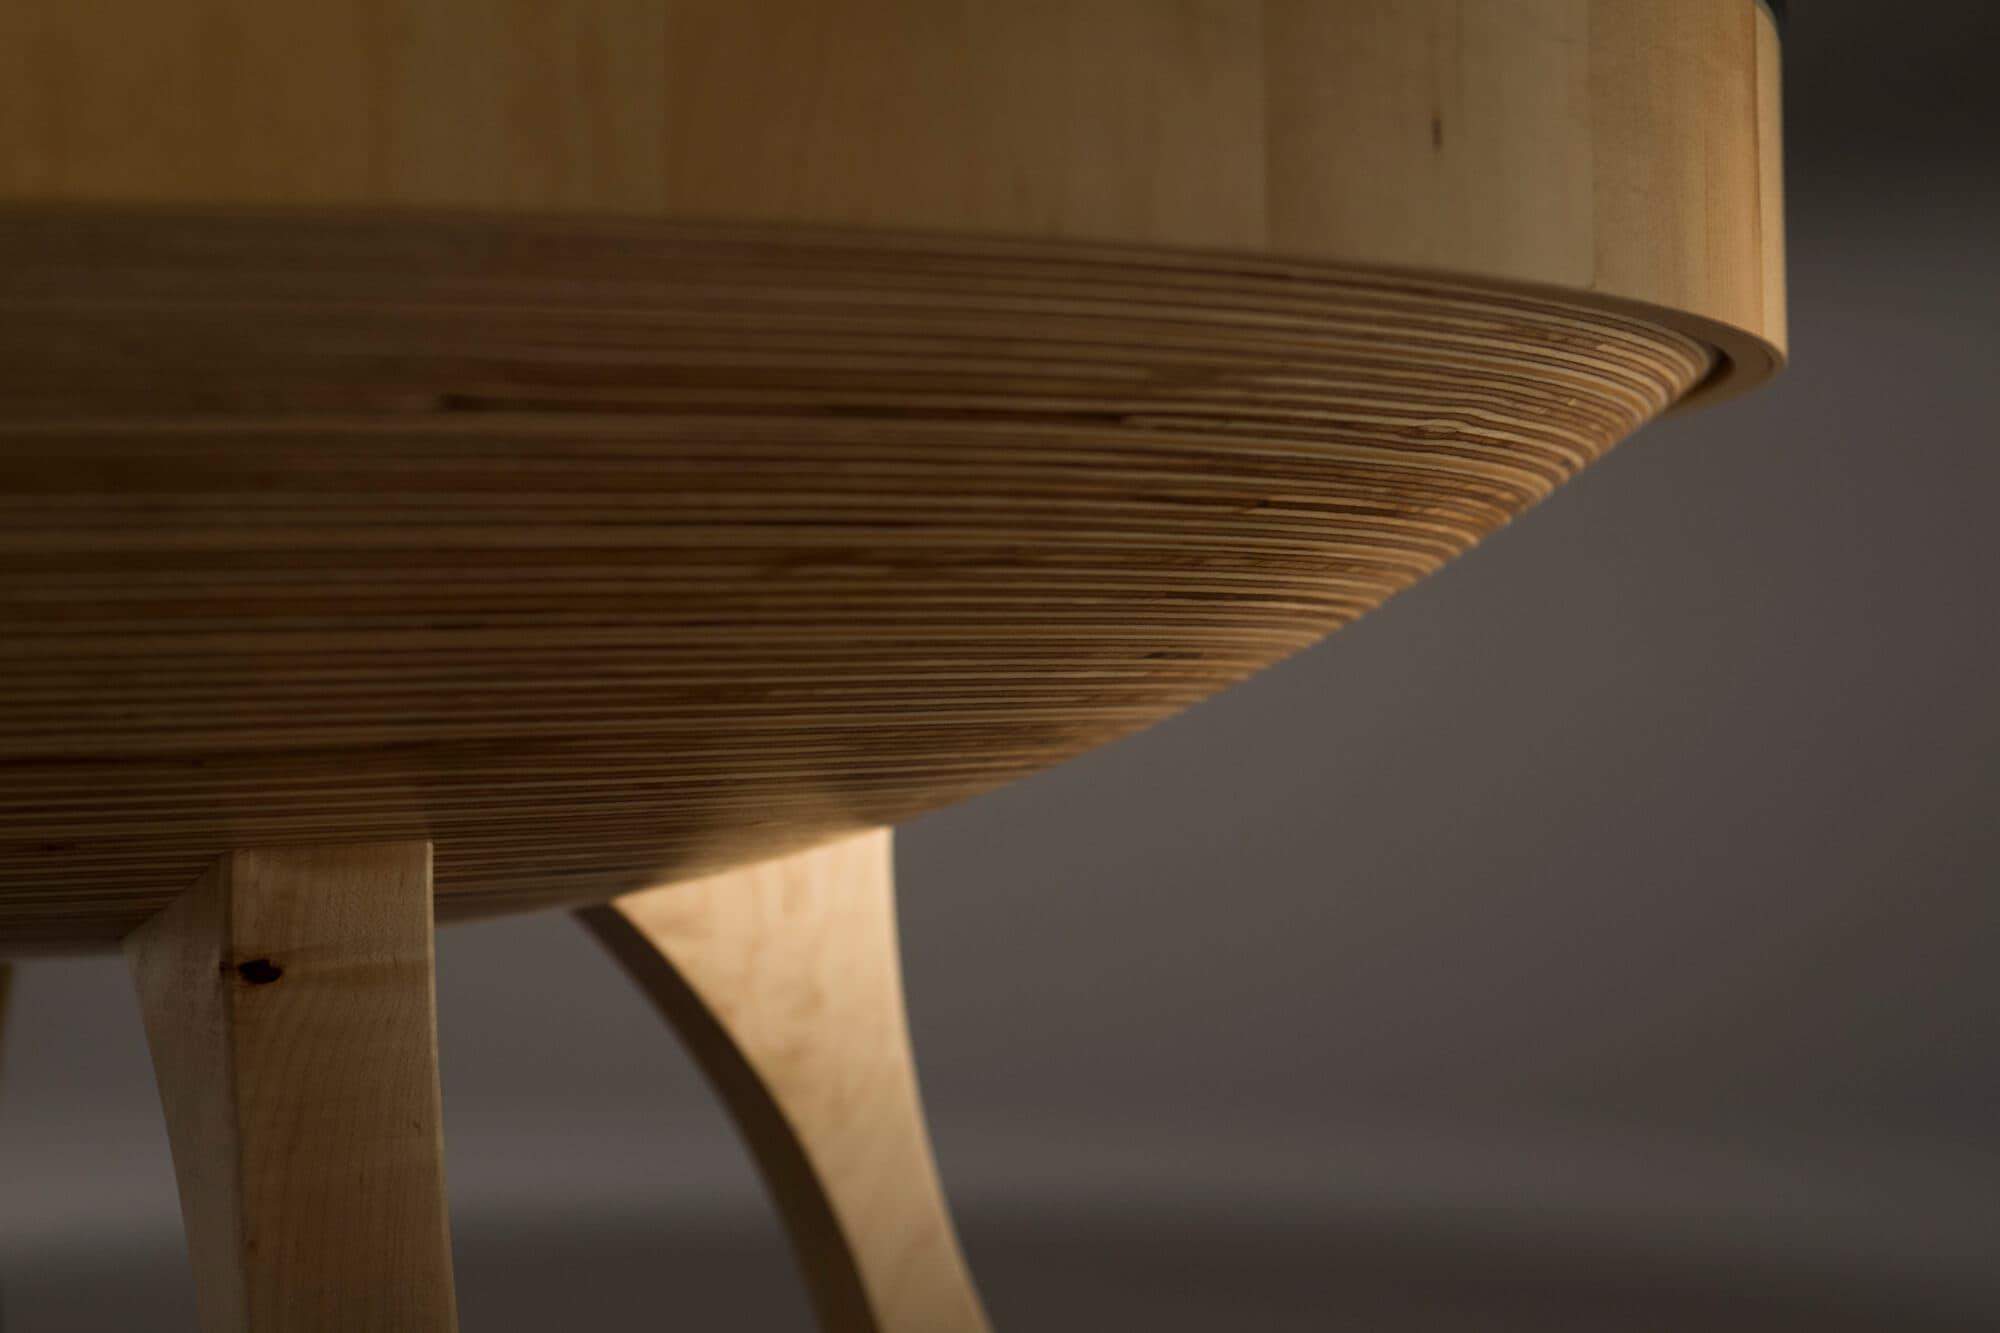 Sisyphus Kinetic Table Design